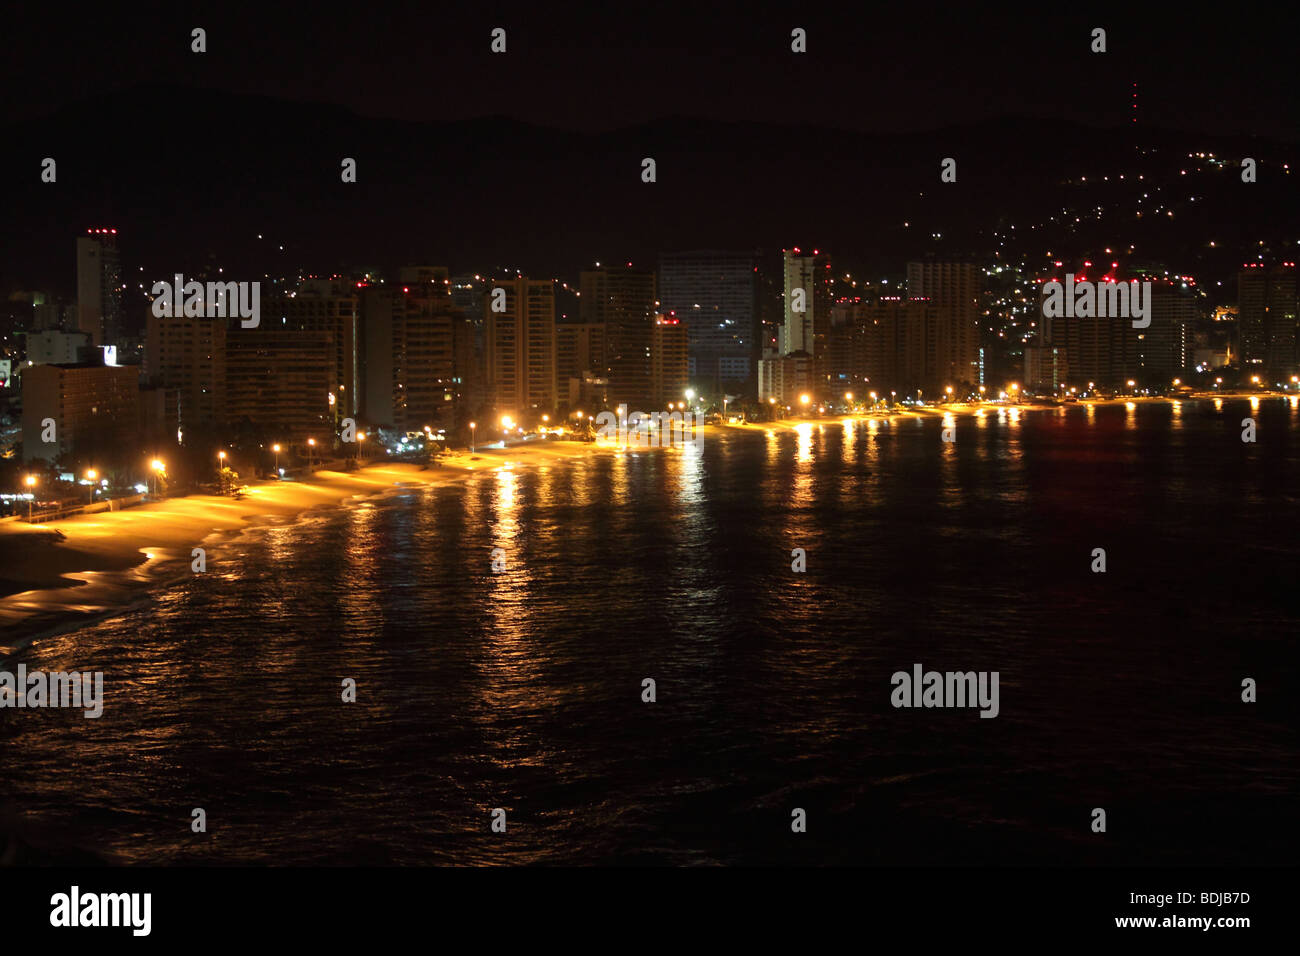 night view of acapulco bech in guerrero state, mexico Stock Photo